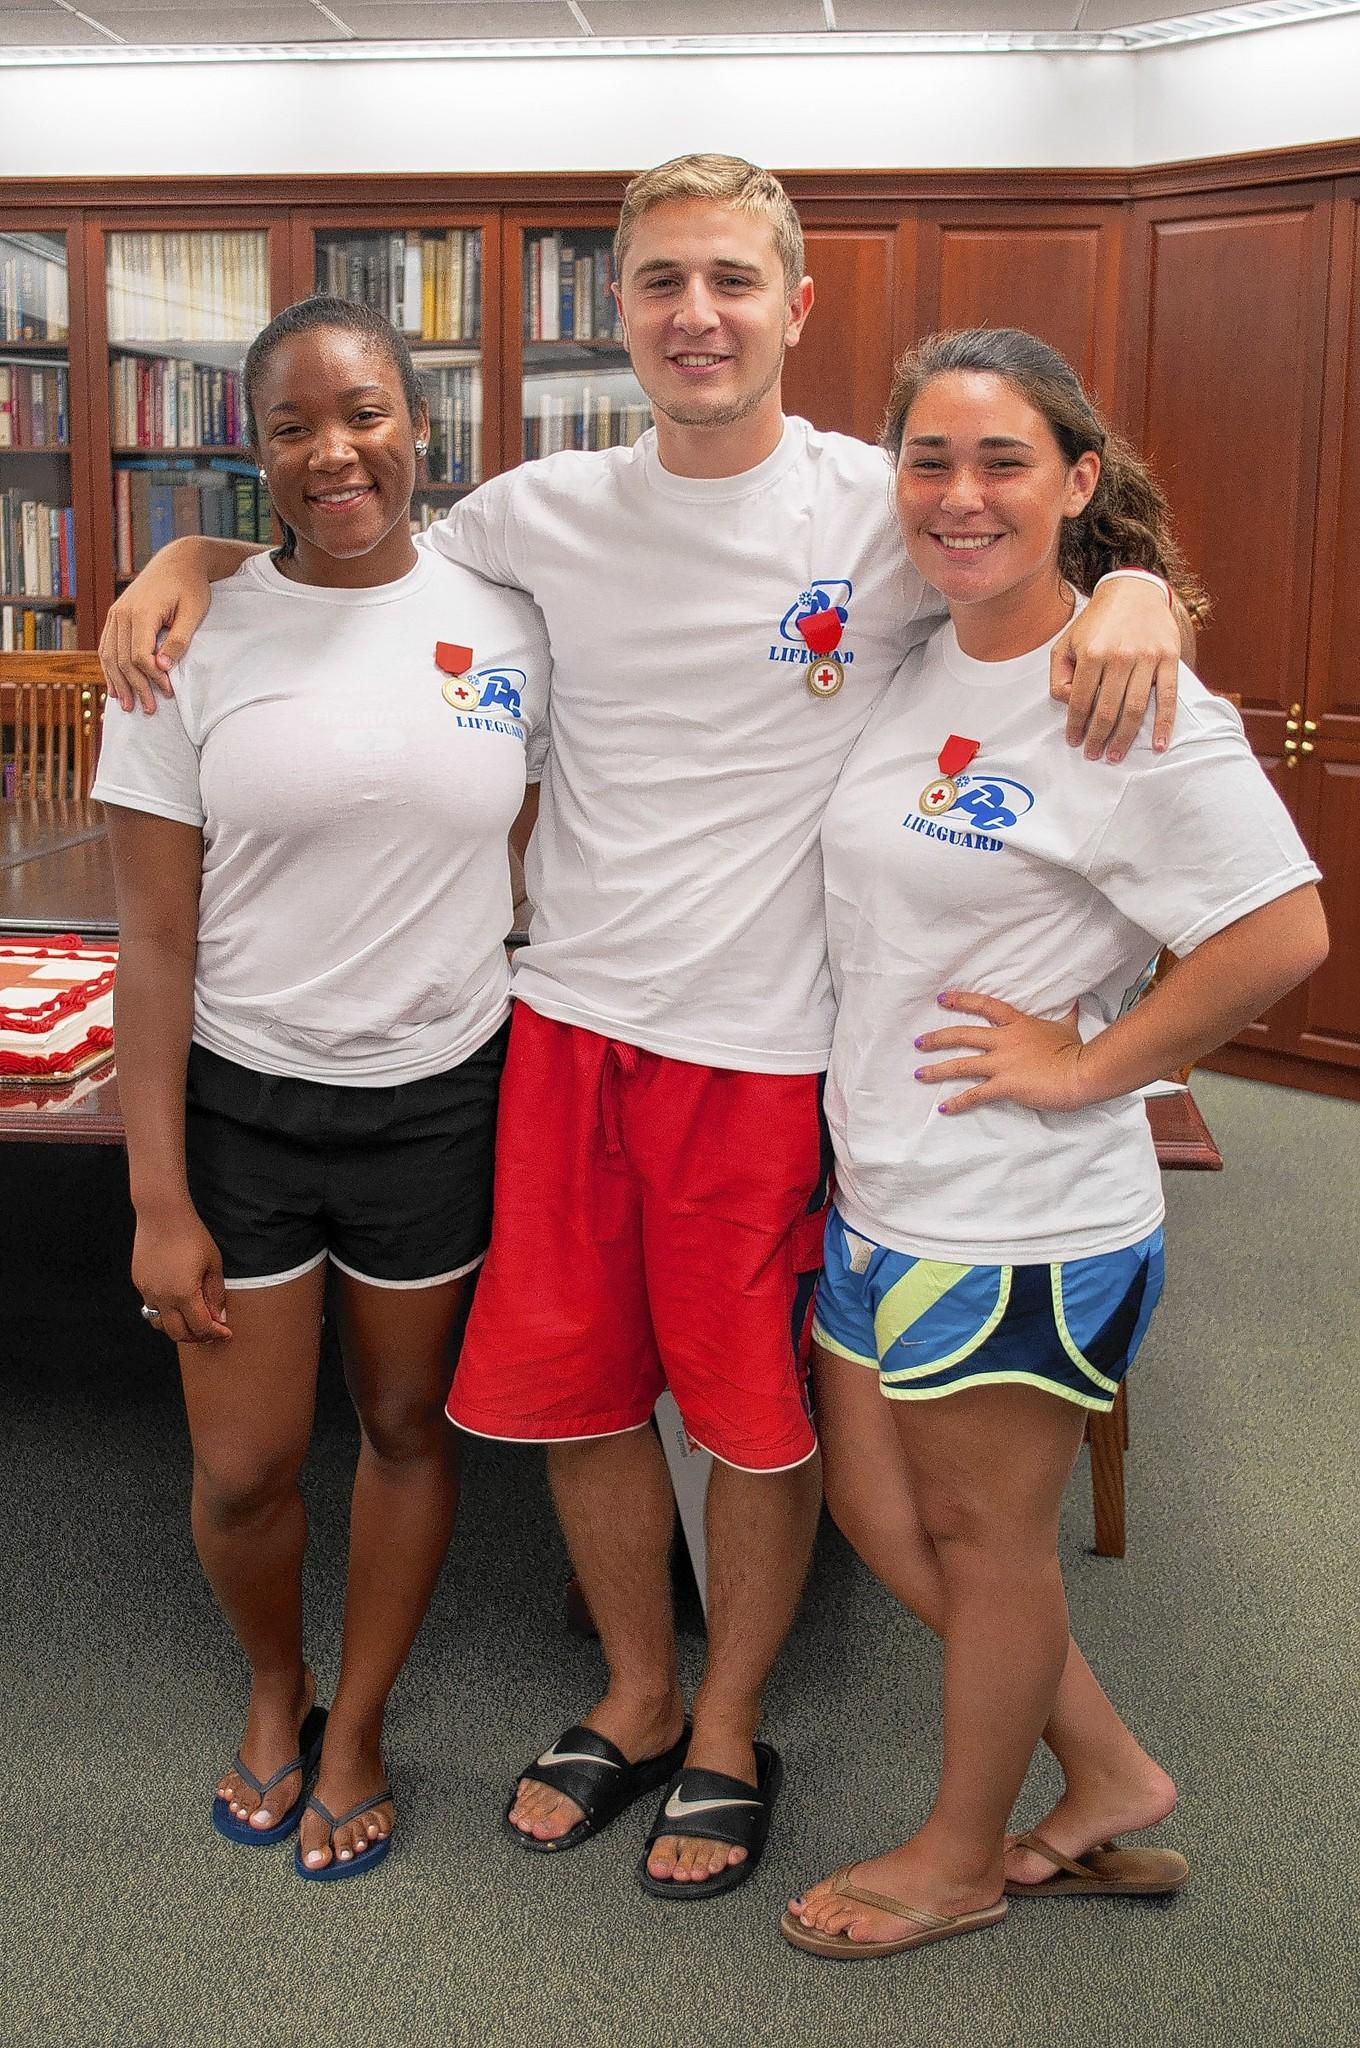 From left to right: JCC lifeguards Jalina Ray, Andrew Minkin and Jennifer Siegel.